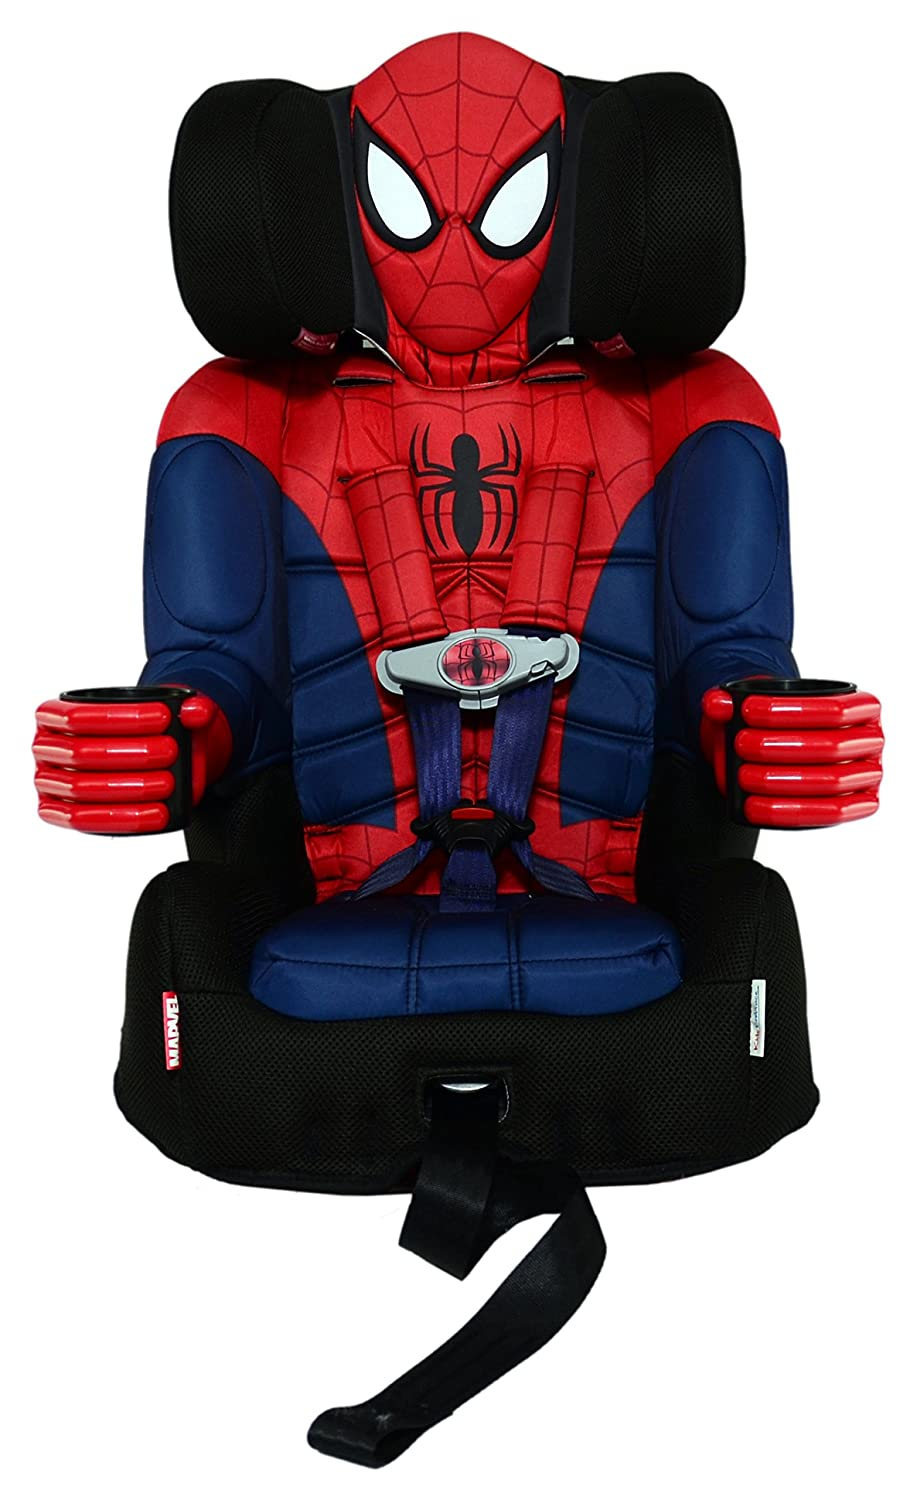 KidsEmbrace Friendship Combination Booster, Ultimate Spiderman, Blue/Red 30.01.SPD